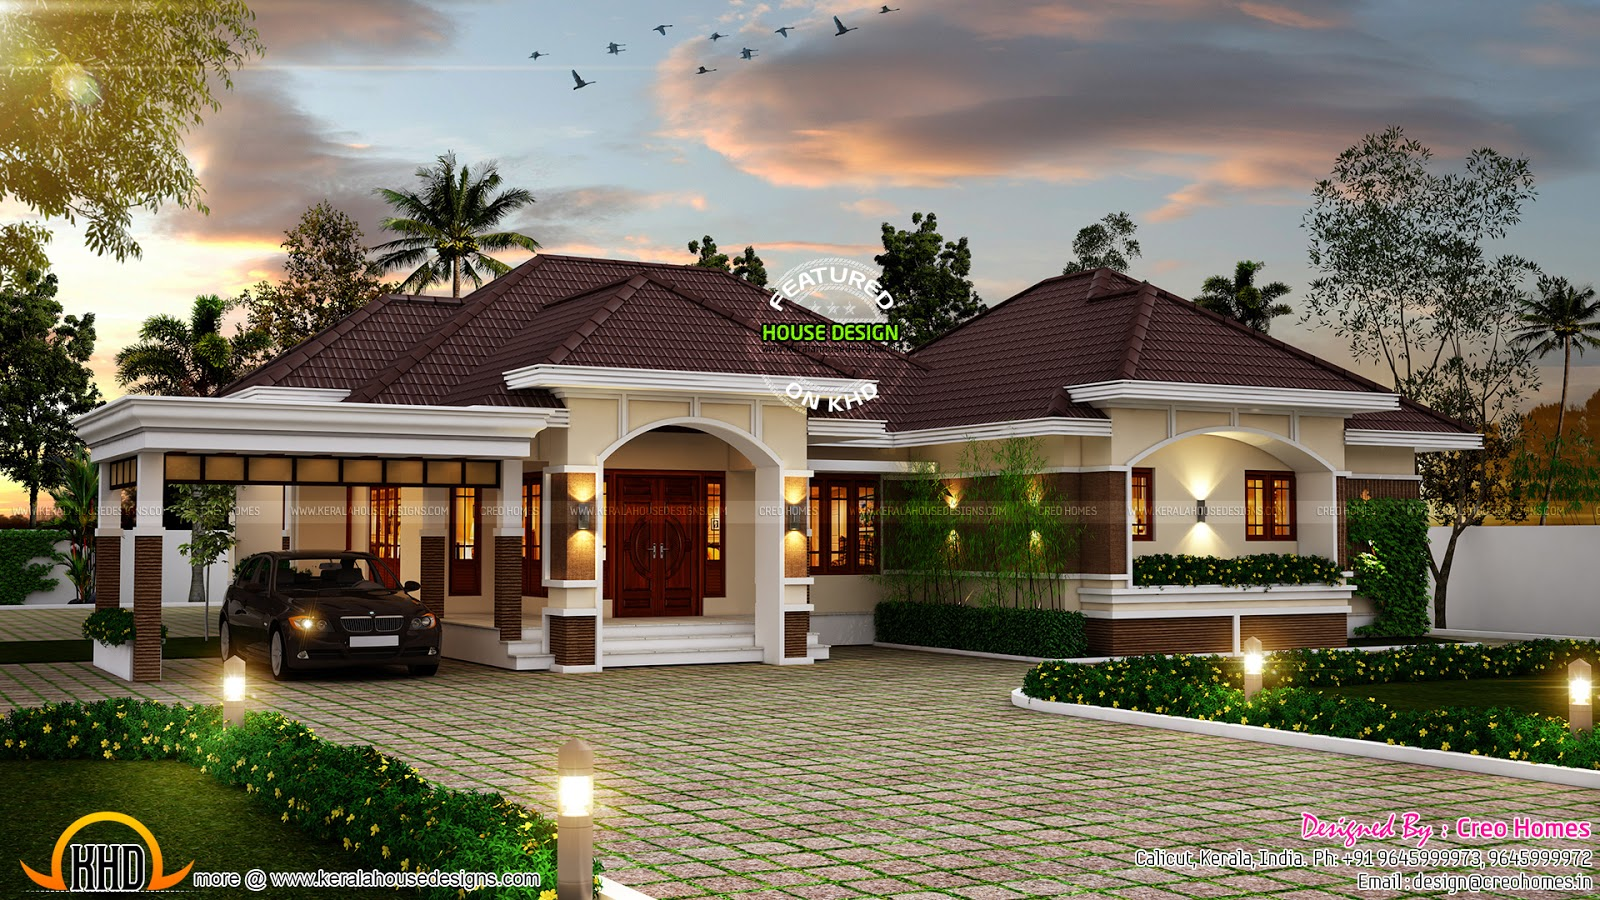 Outstanding bungalow in kerala kerala home design and for Www bungalow design